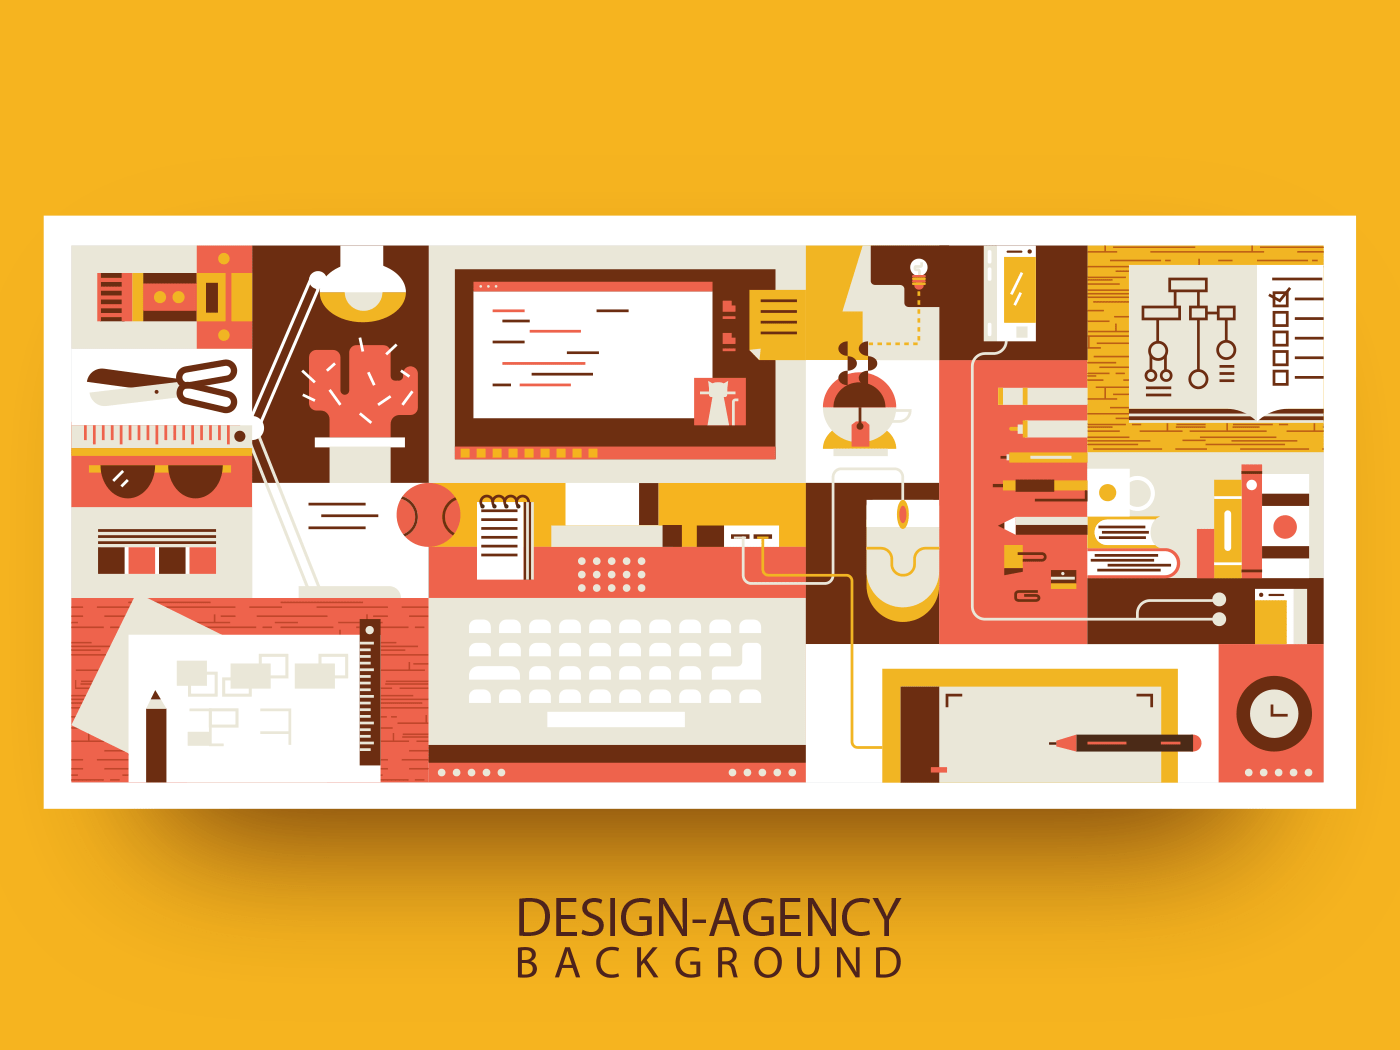 Abstract workspace design background